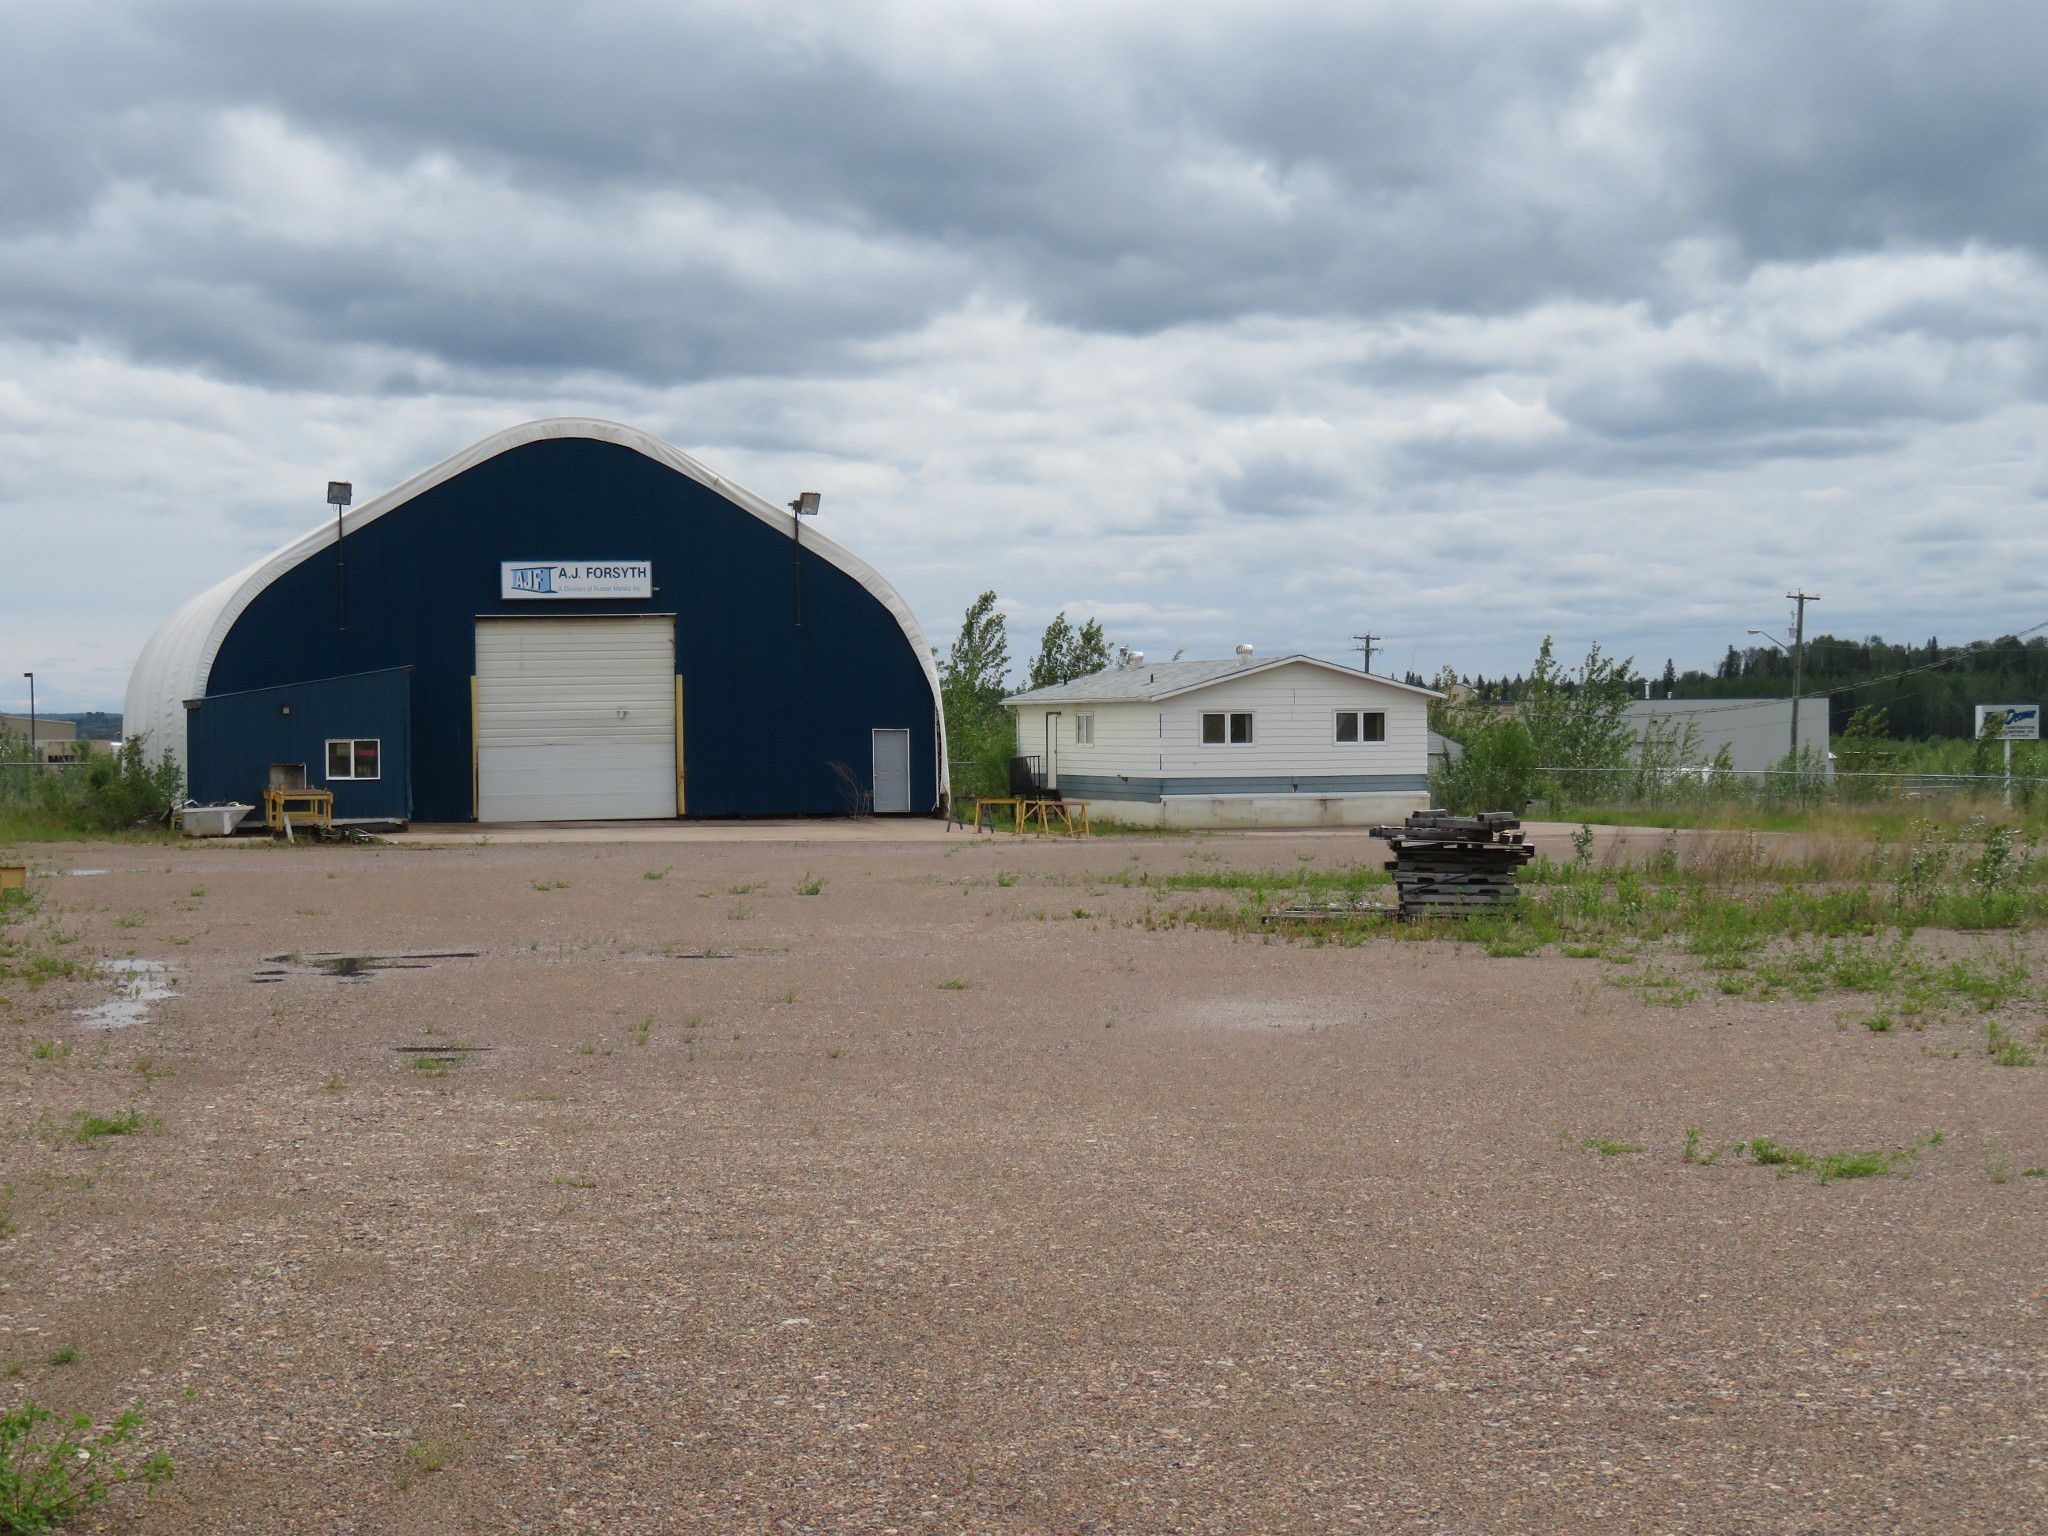 Main Photo: 4850 44 Avenue in Fort Nelson: Industrial for sale or lease (Fort Nelson (Zone 64))